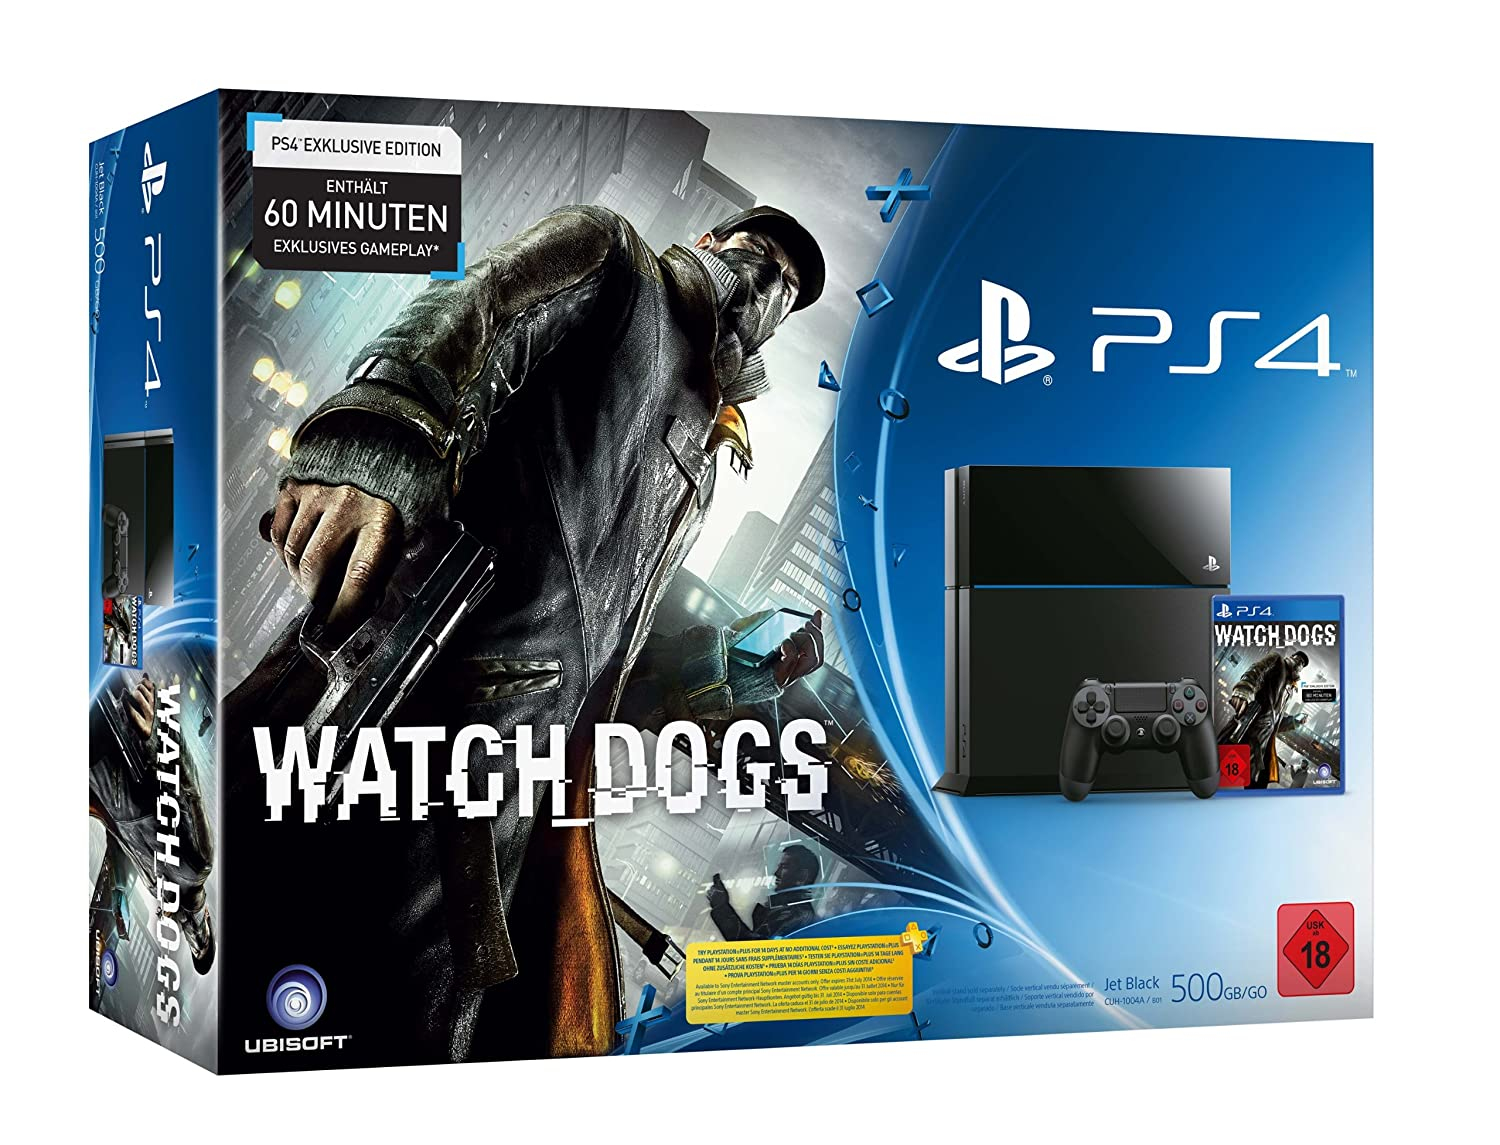 PlayStation 4 Watch Dogs Konsolen Bundle